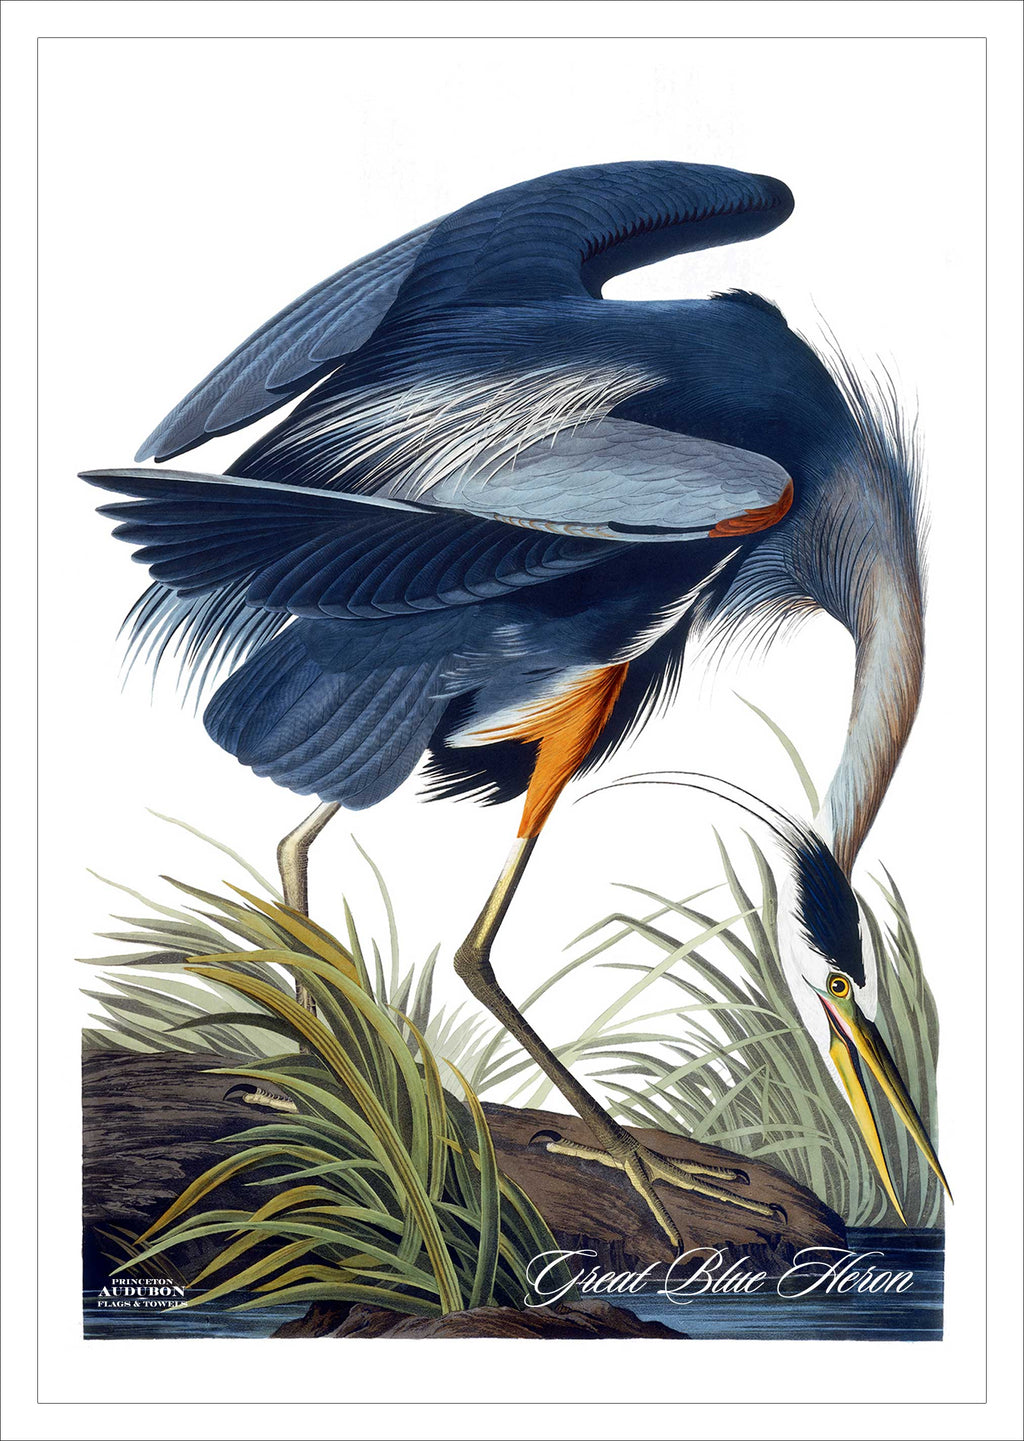 PAL, Garden Flag 12.5x18 (GFG), Great Blue Heron, GREATBLUEHERON, S